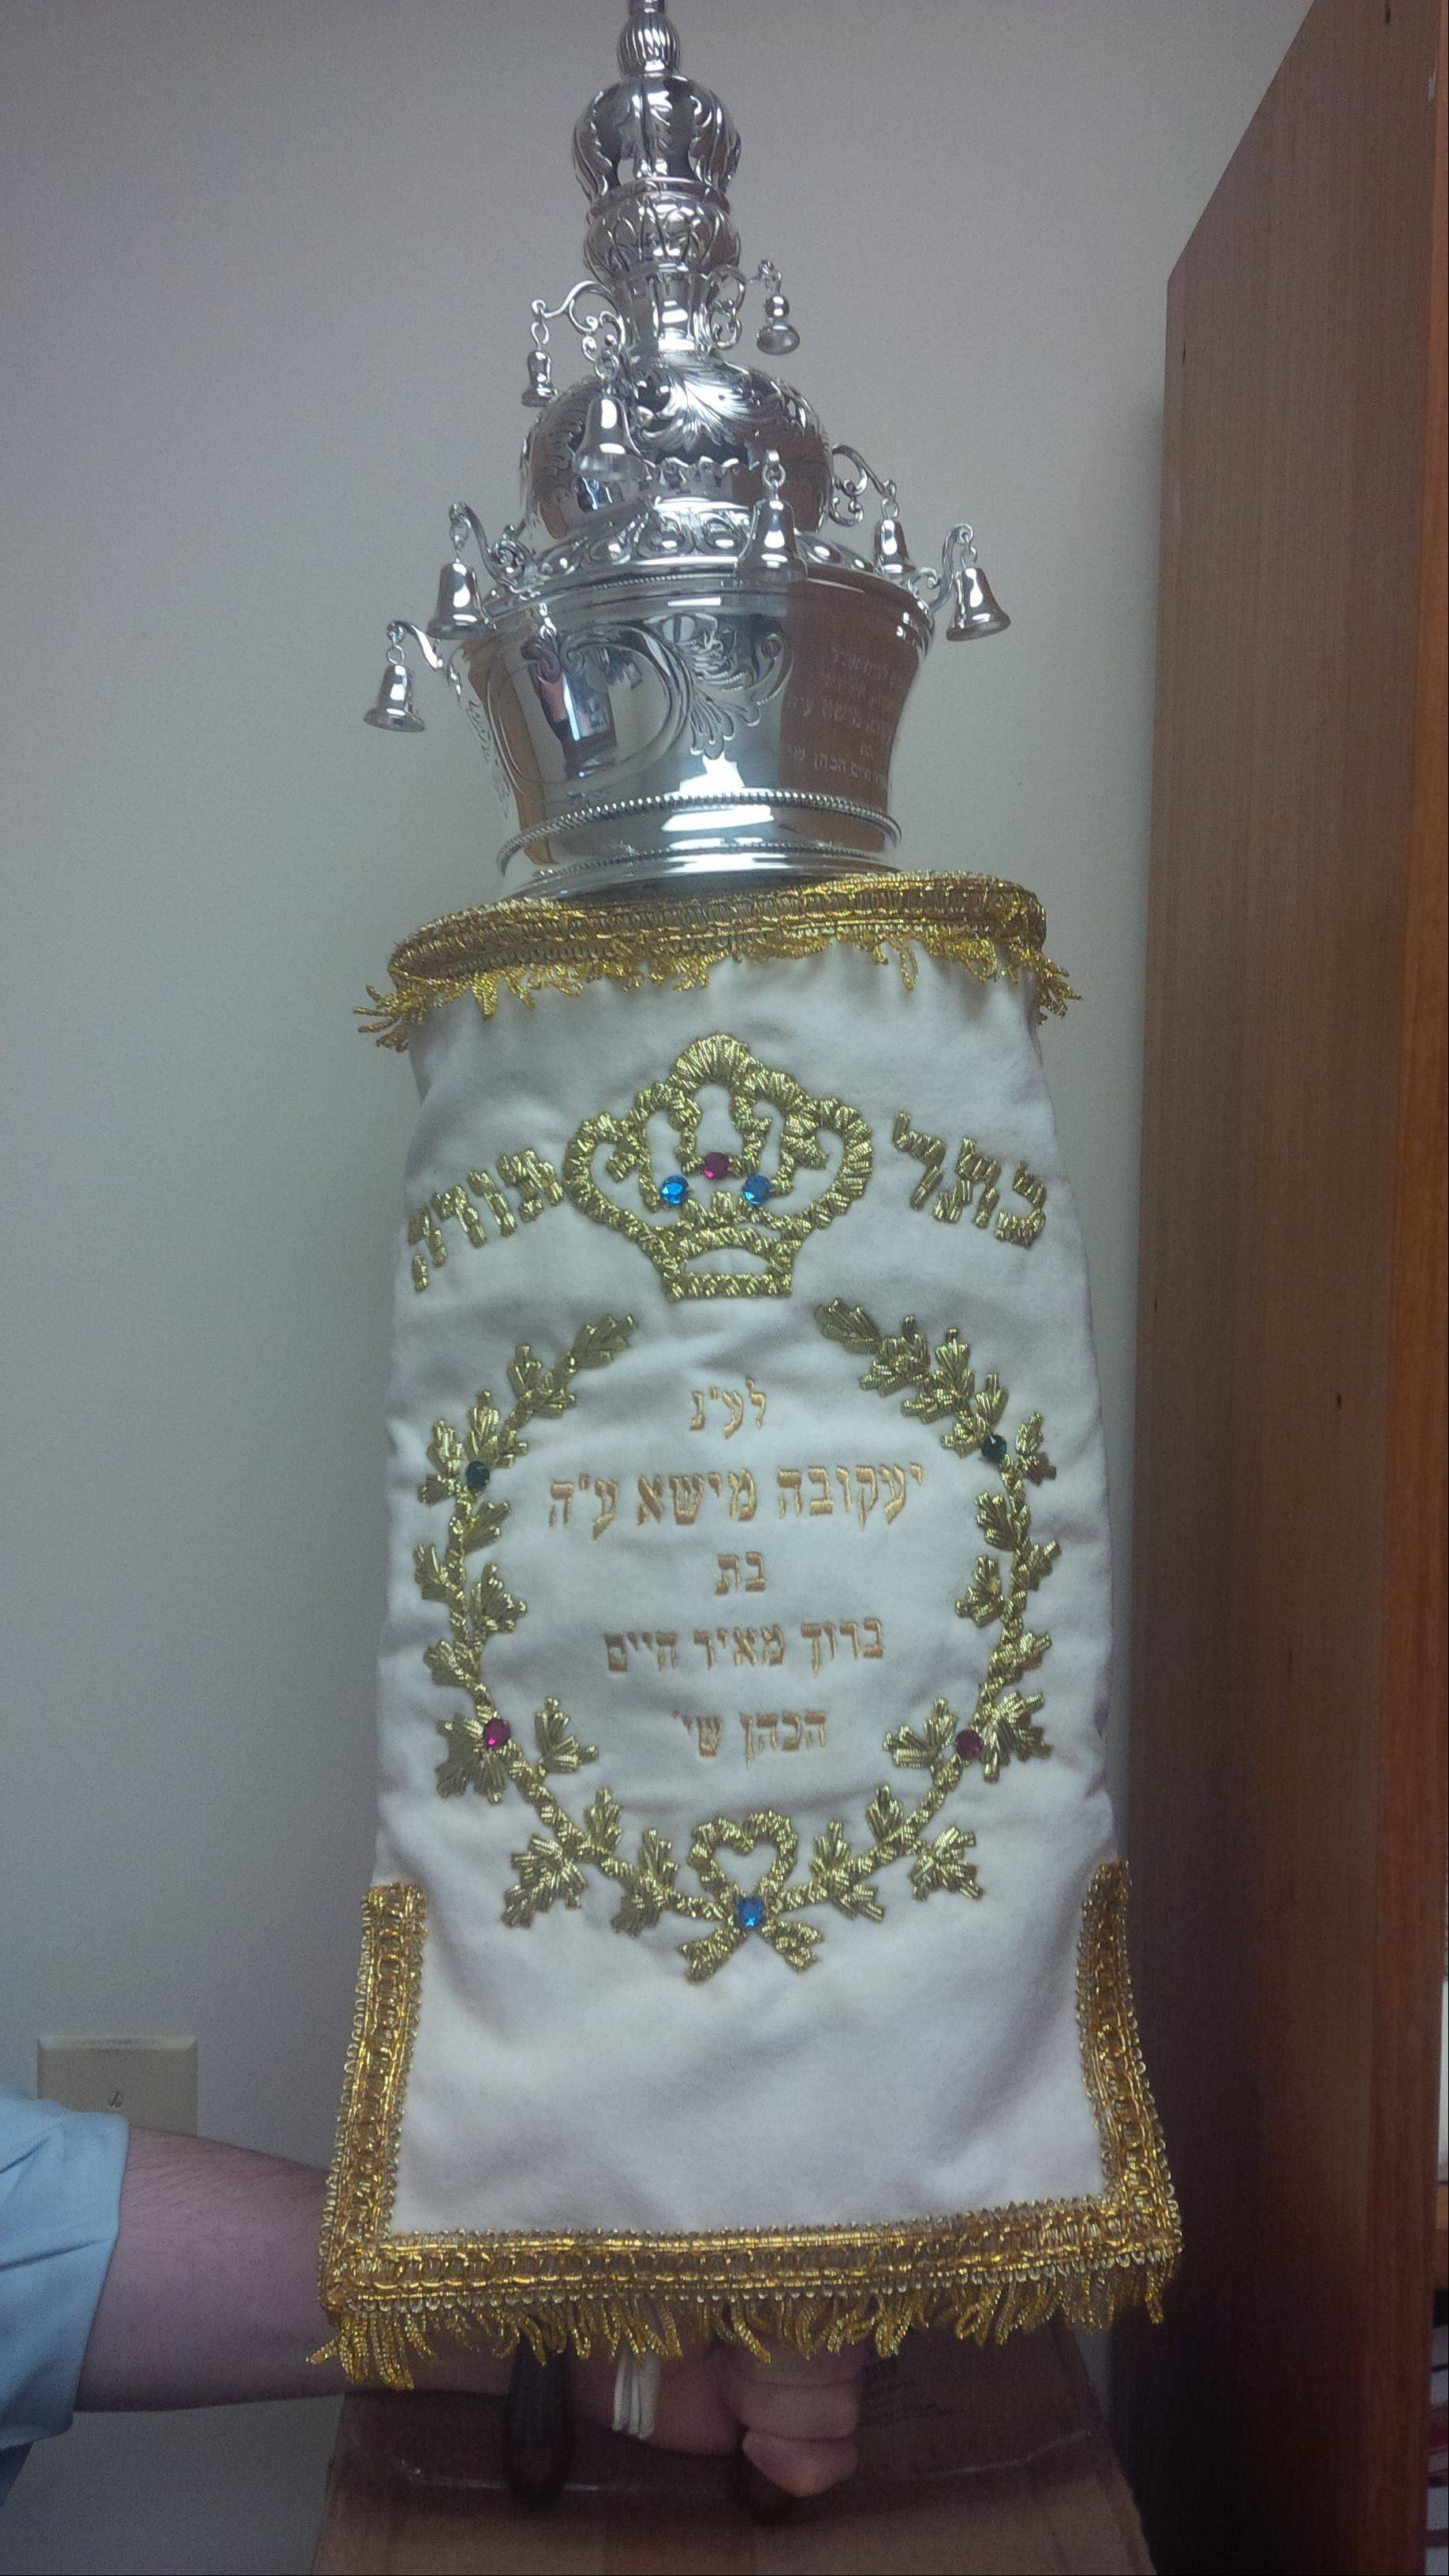 This miniature Torah will be welcomed into Congregation Lubavitch Chabad in Northbrook on July 21.